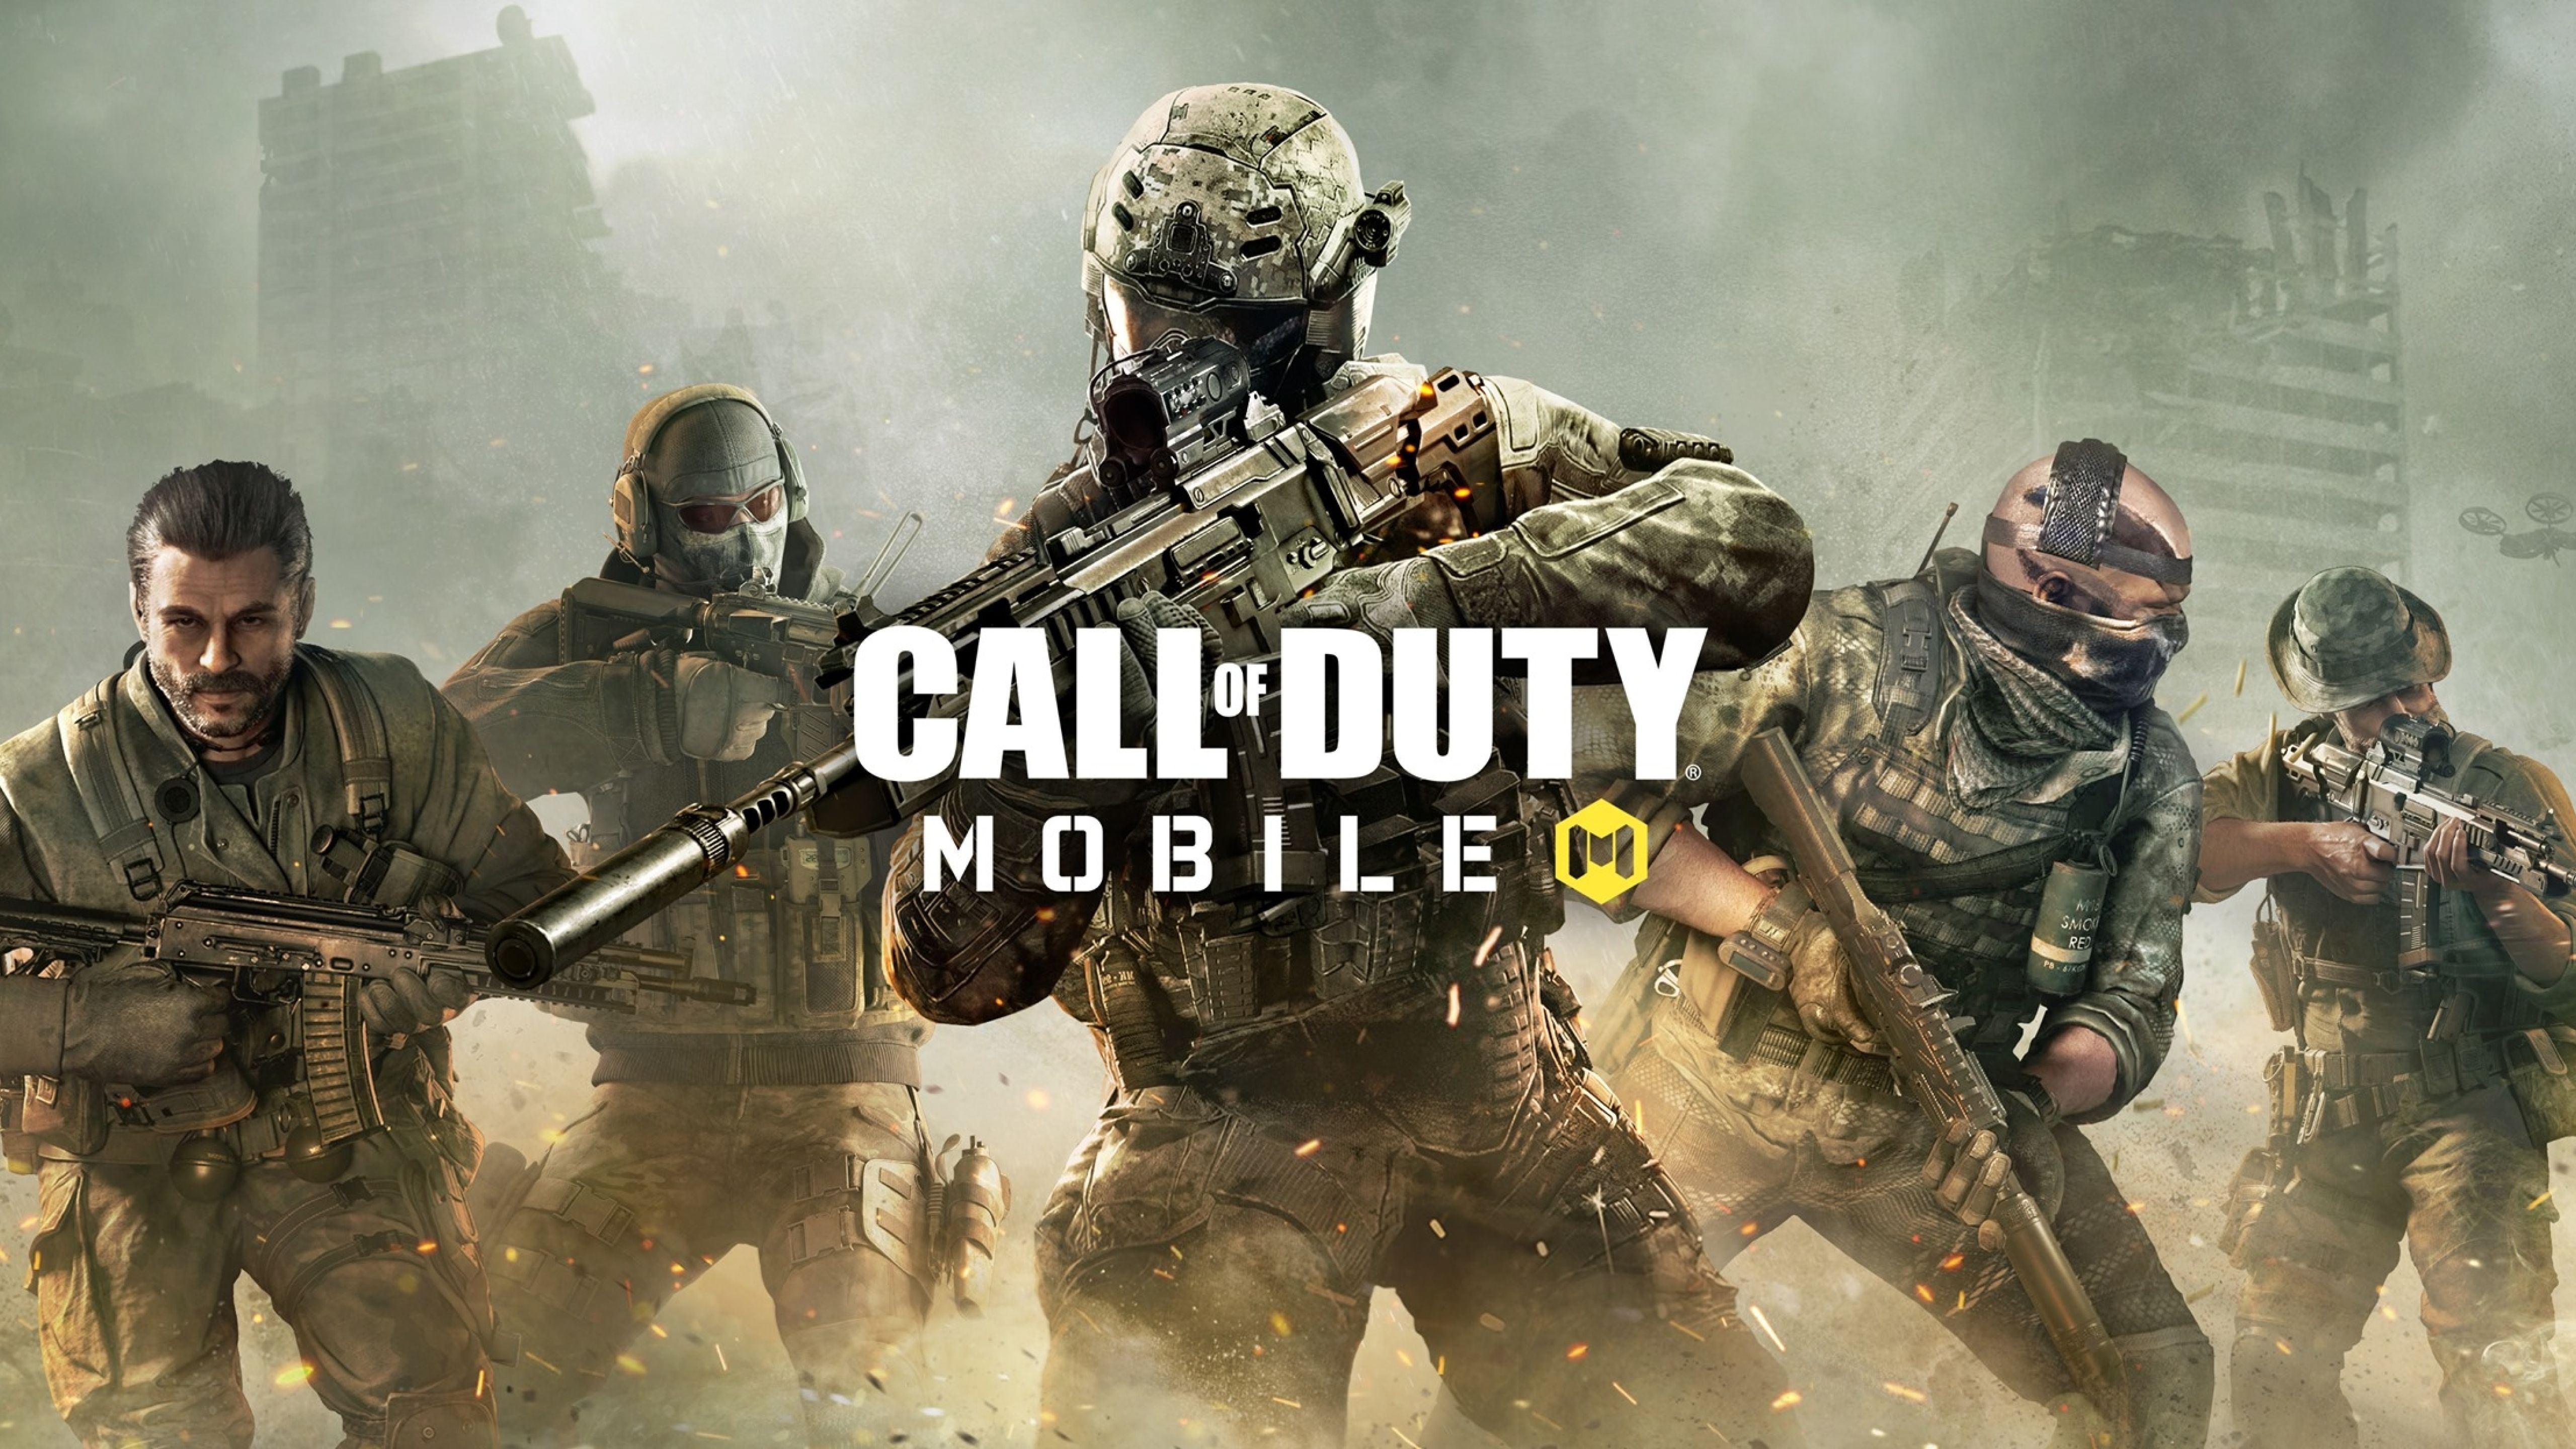 Call of Duty Mobile Wallpapers   Top Call of Duty Mobile 5120x2880